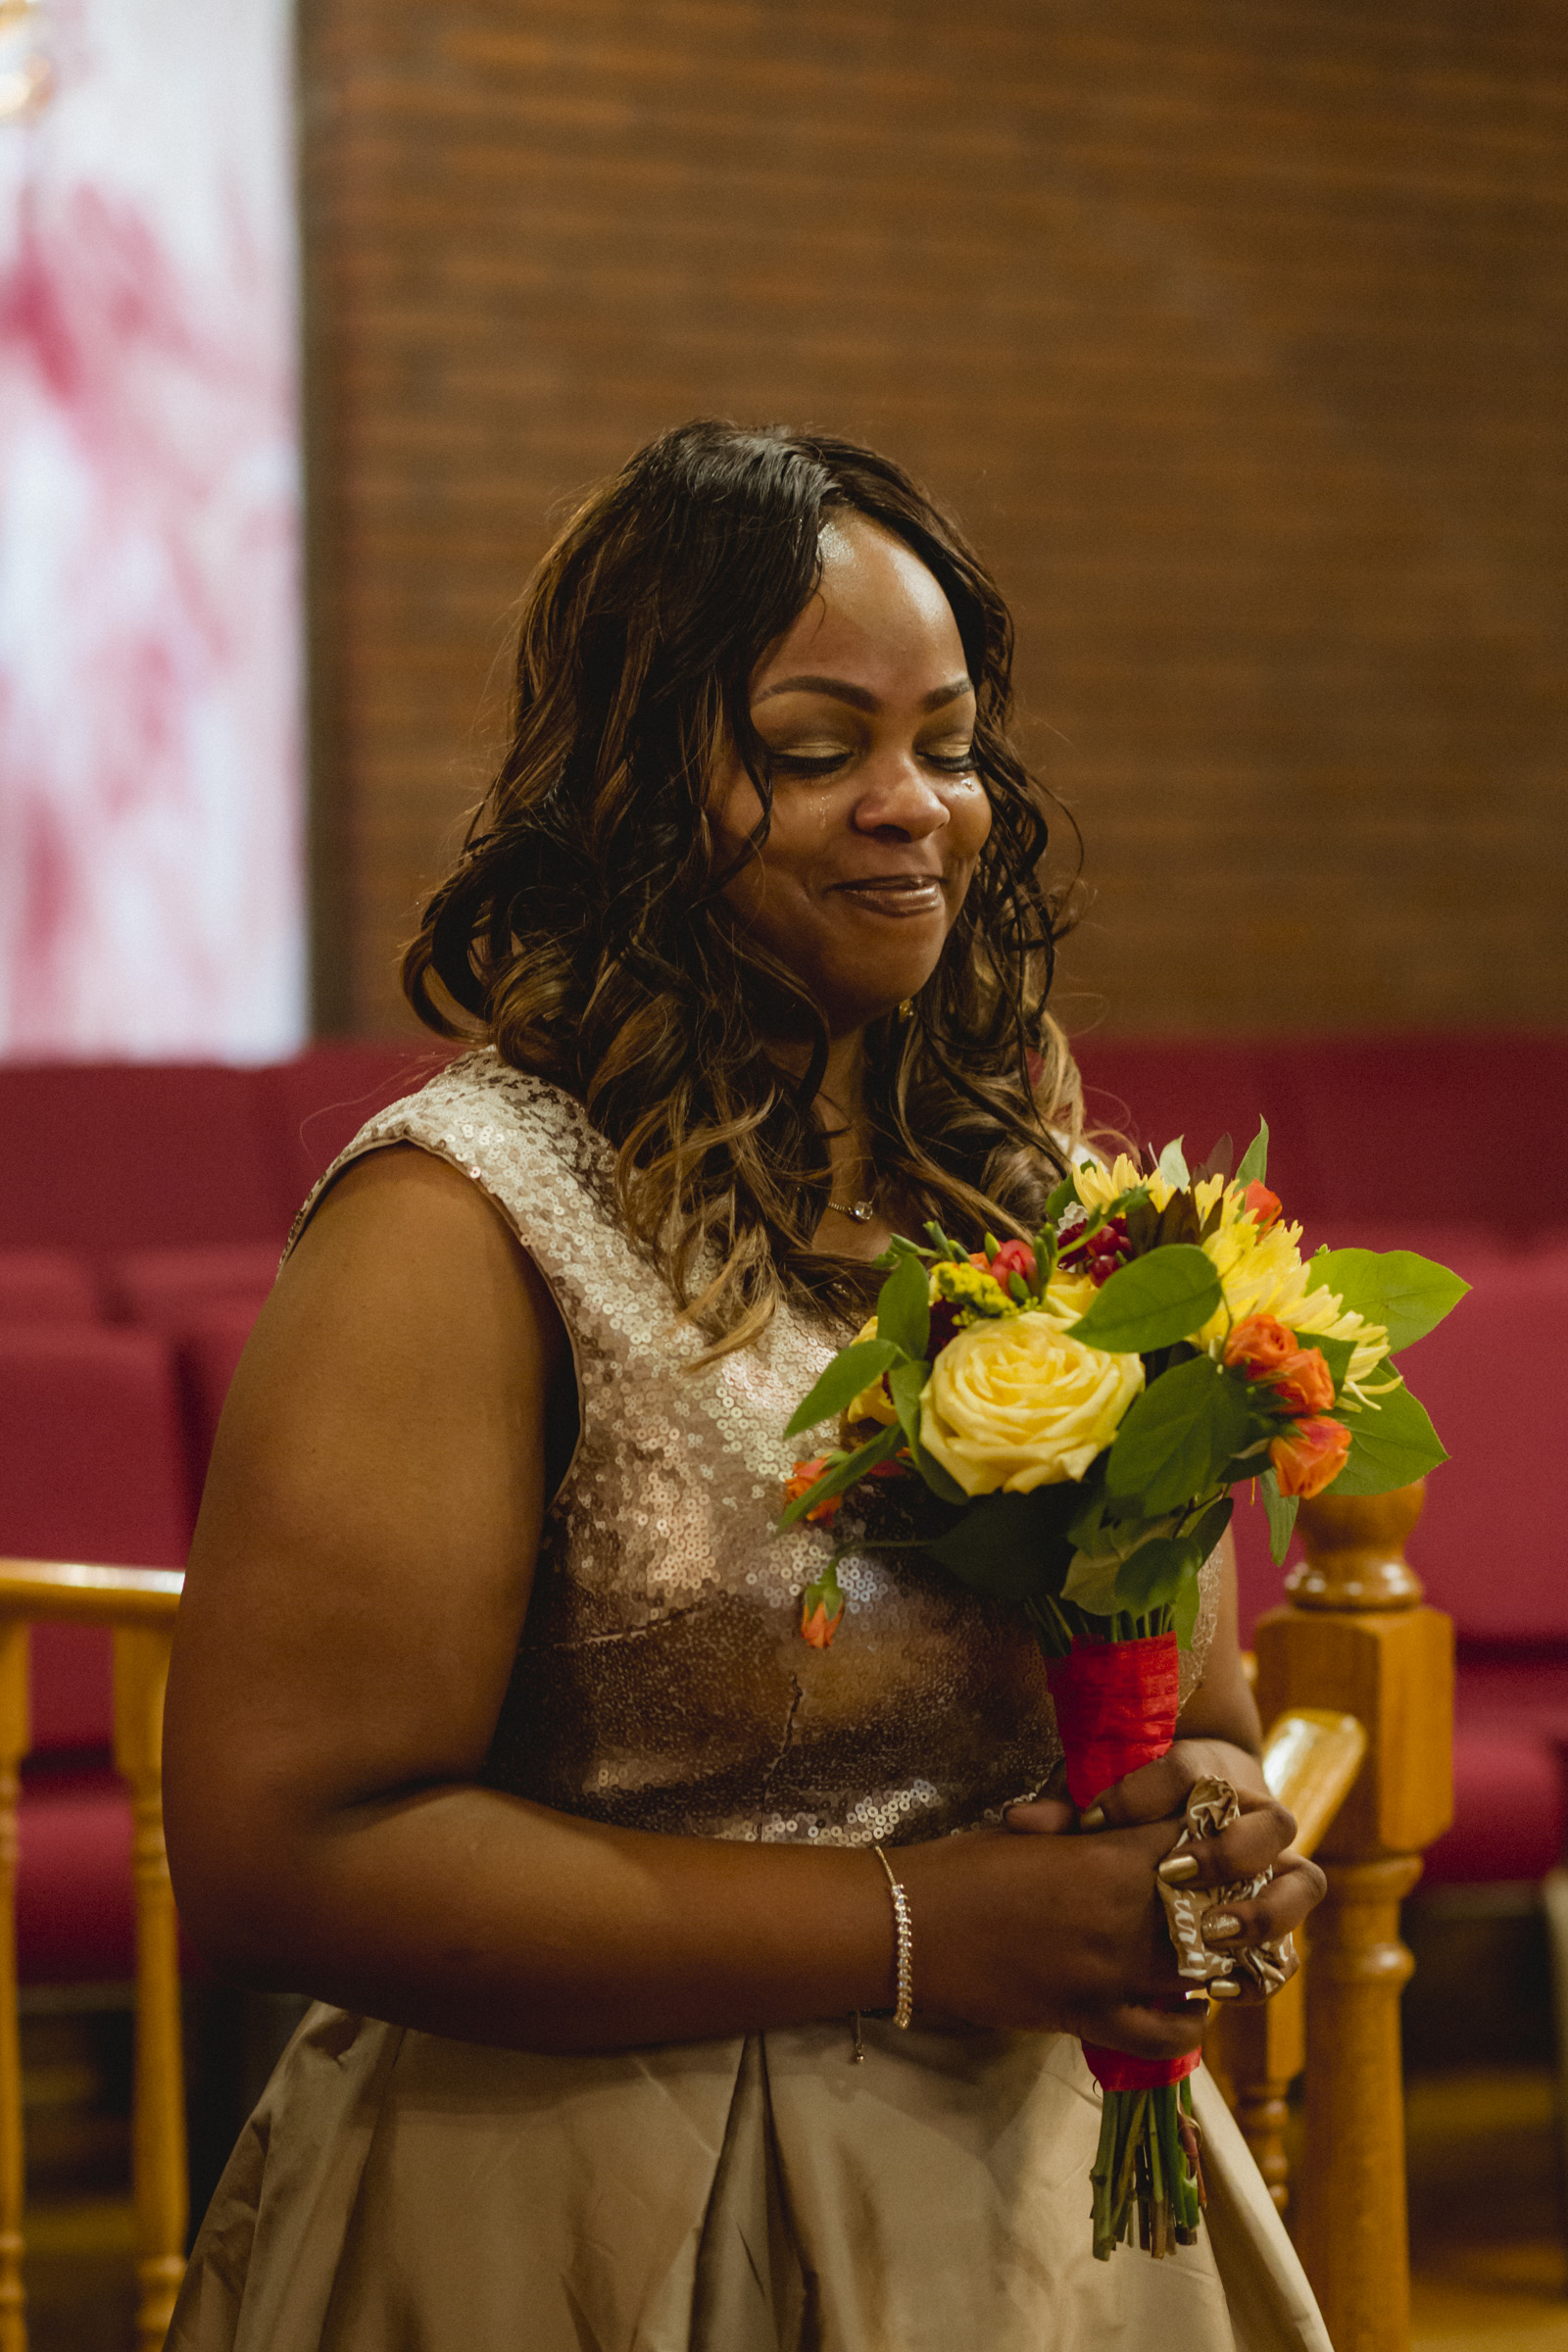 Amy Sims Photography | Maid of honor tears up as bride comes down the aisle | Greater St. Stephen United Church of God | New York Wedding Photographer | Brooklyn Church Wedding